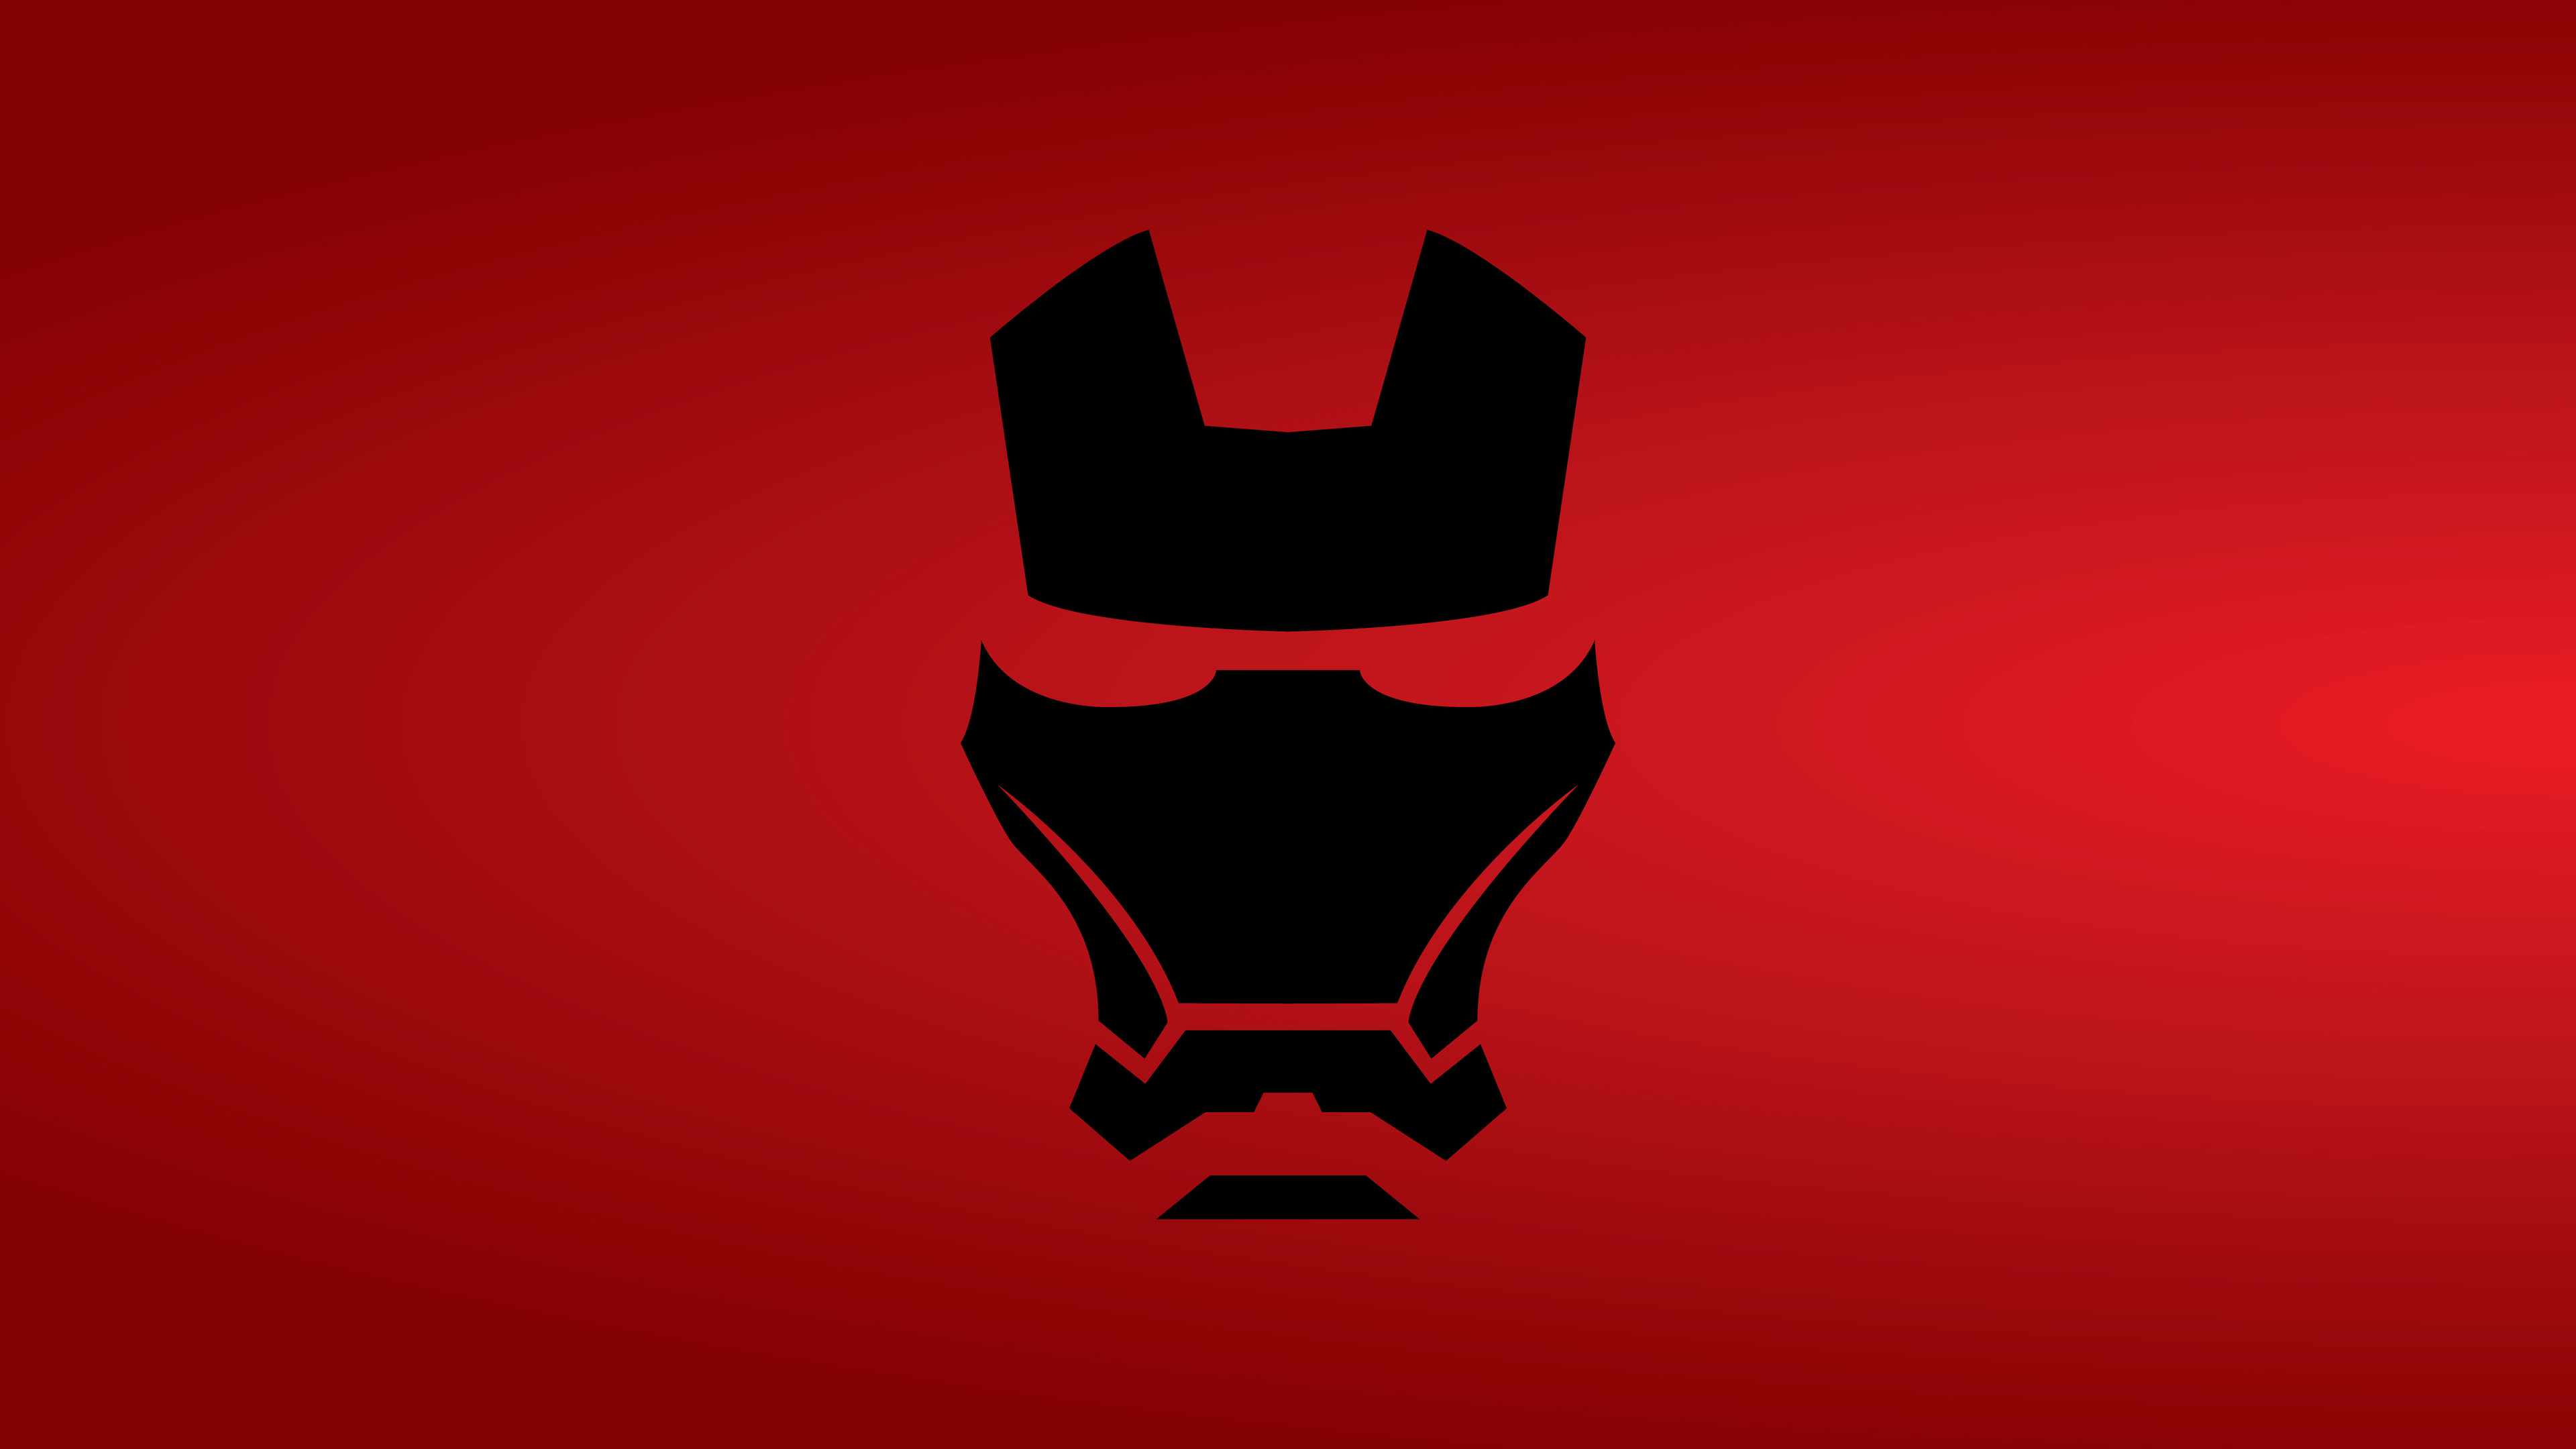 Wallpaper 4k Iron Man Mask Minimalist 8k 4k Wallpapers 5k